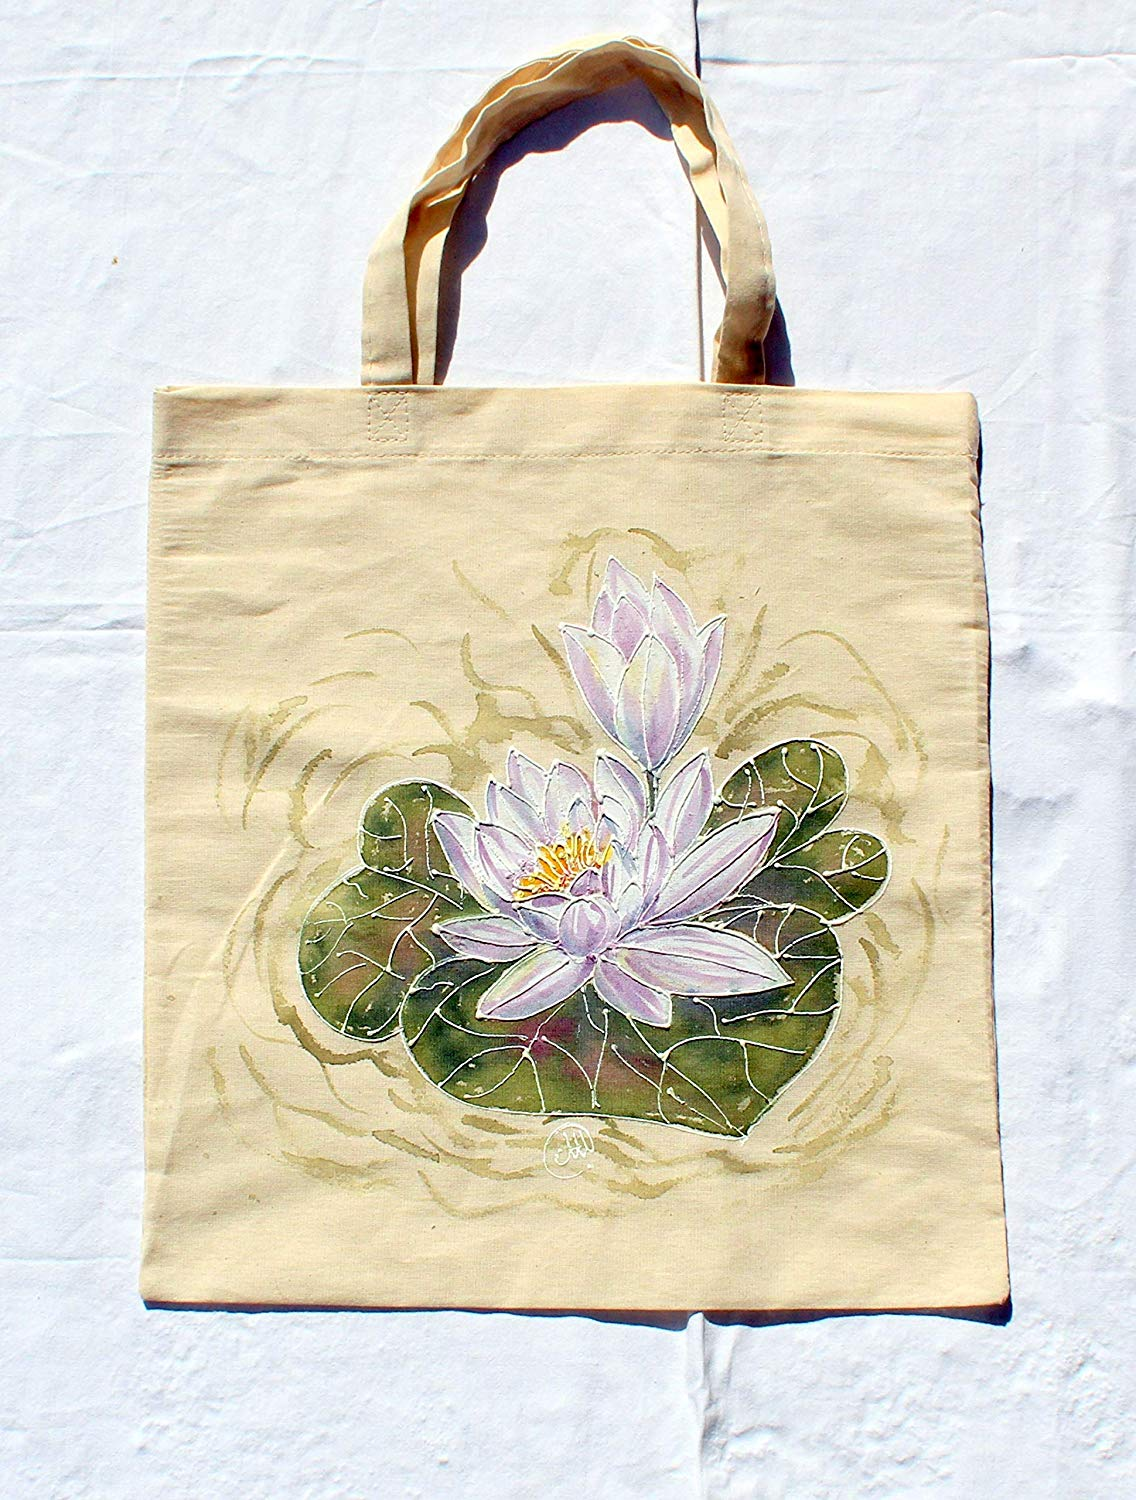 Sale!!! 15% OFF,Hand Painted Water Lily Cotton Bag,Acrylic Painted White Water Lily,From Weekend beach bag to Everyday Grocery Shopper,Floral Flowers Water Lily,Water Lily Canvas Tote